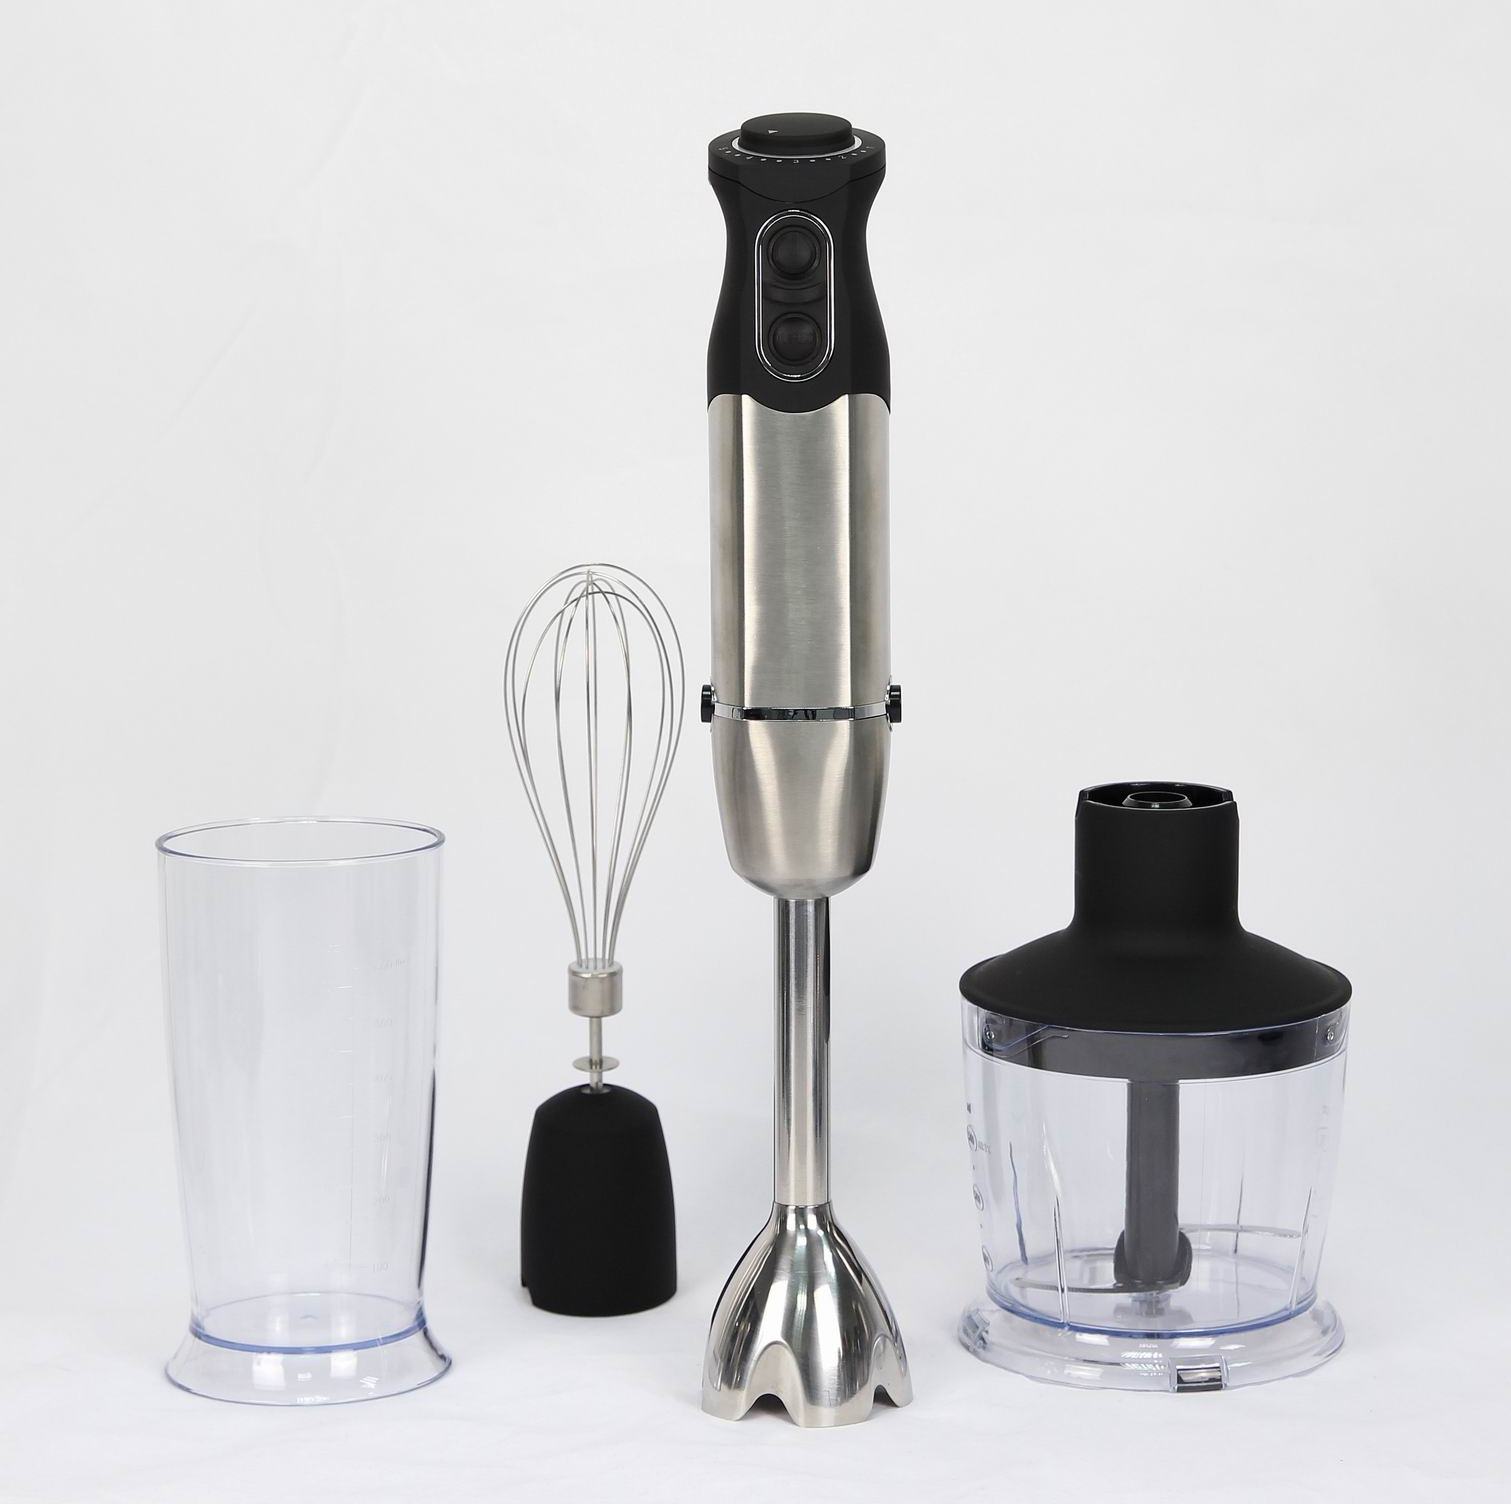 Hand mixer HE-2023 shenshen wholesaler-shenzhen electrical appliances co.,ltd